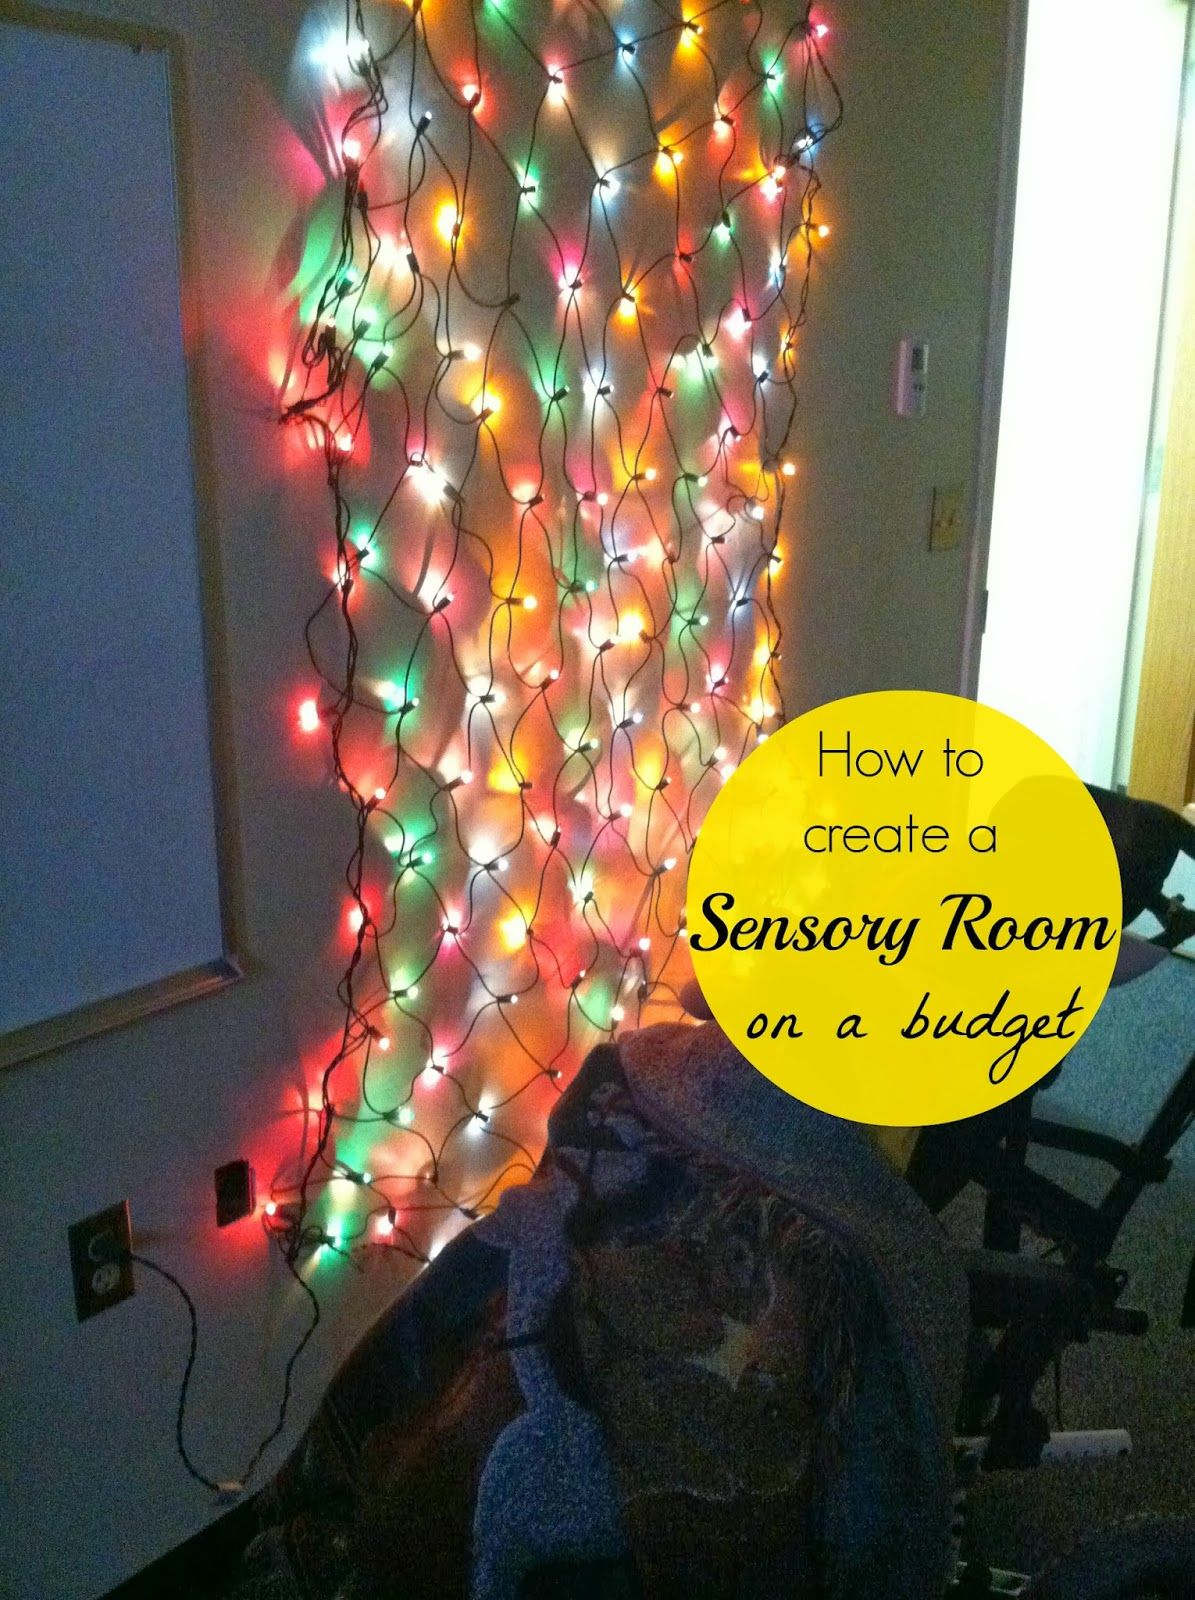 Tips For Creating A Sensory Room On A Budget I Even Got